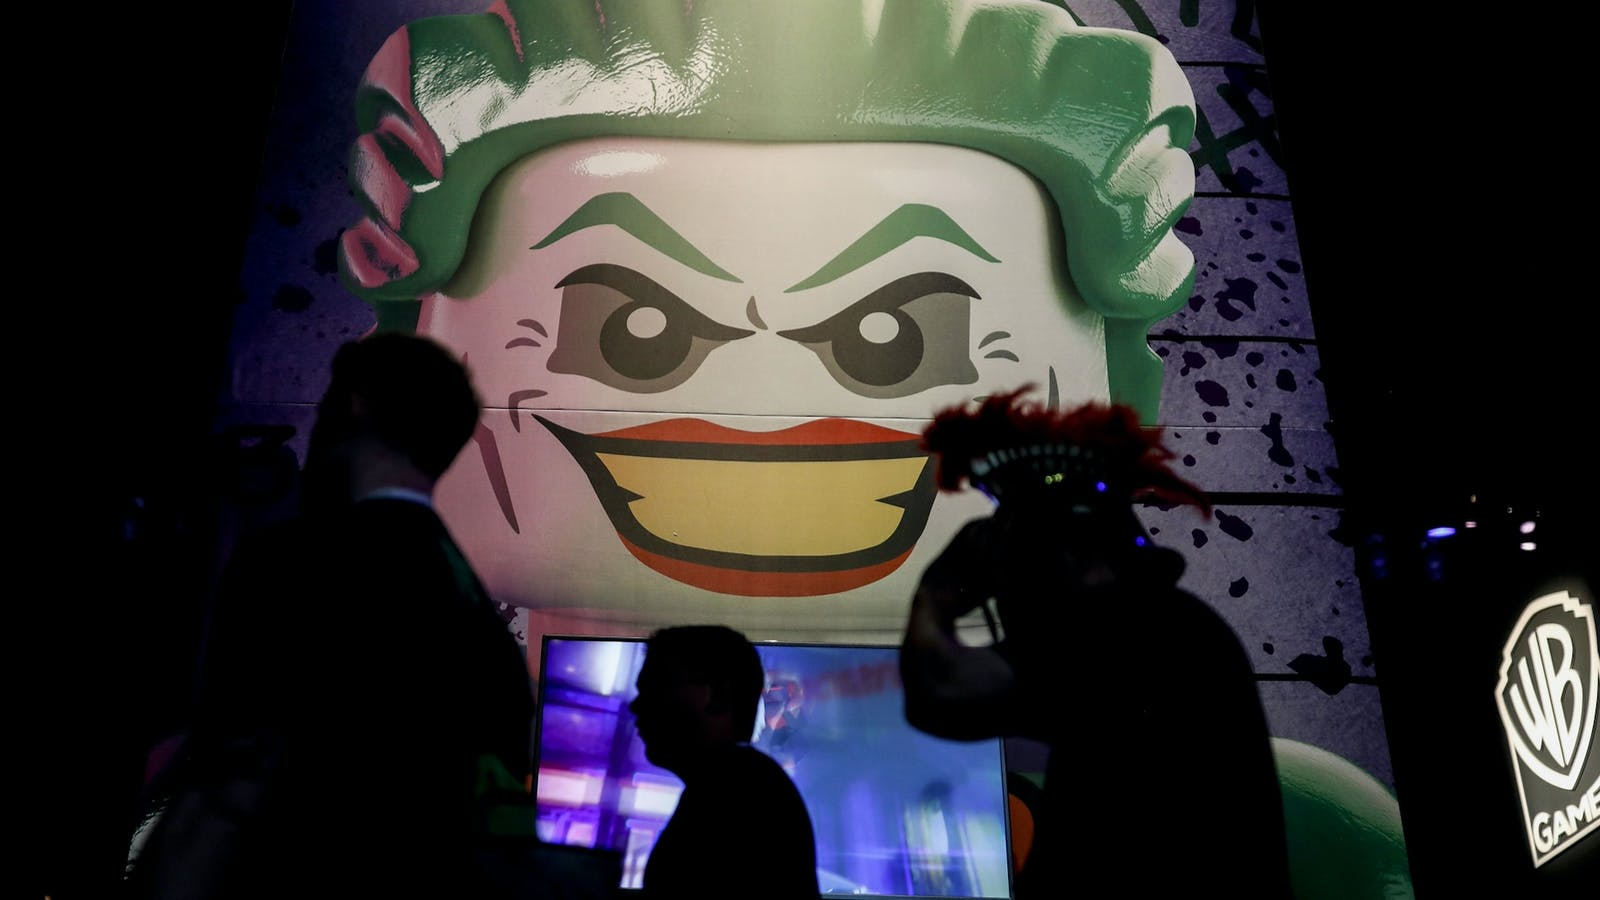 Attendees at the 2018 E3 conference in Los Angeles walk past a booth for Warner Bros. Interactive Entertainment. Photo by Bloomberg